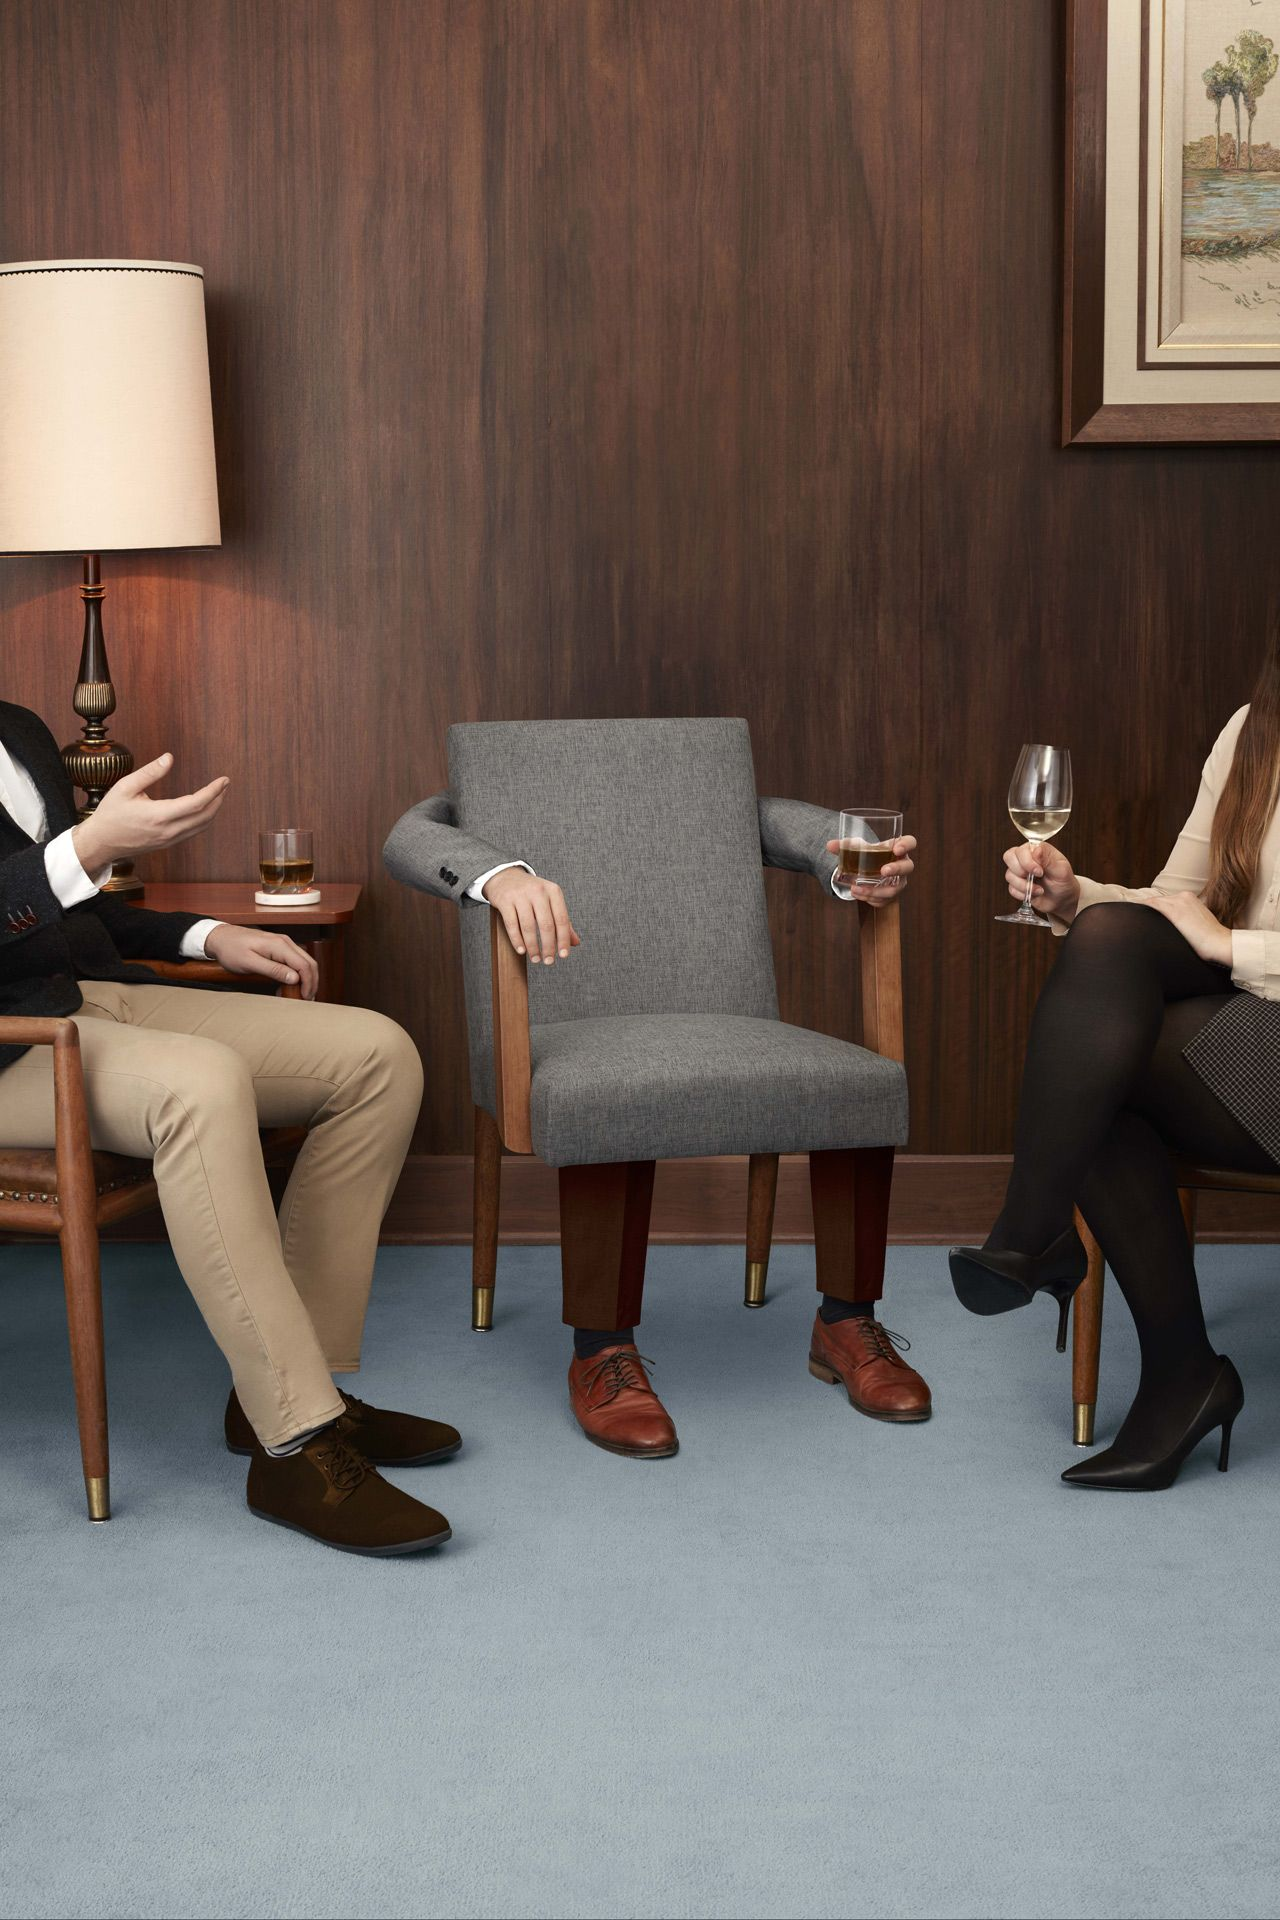 person disguised as a chair surrounded by other people by Simon Duhamel for Berlitz and Rethink